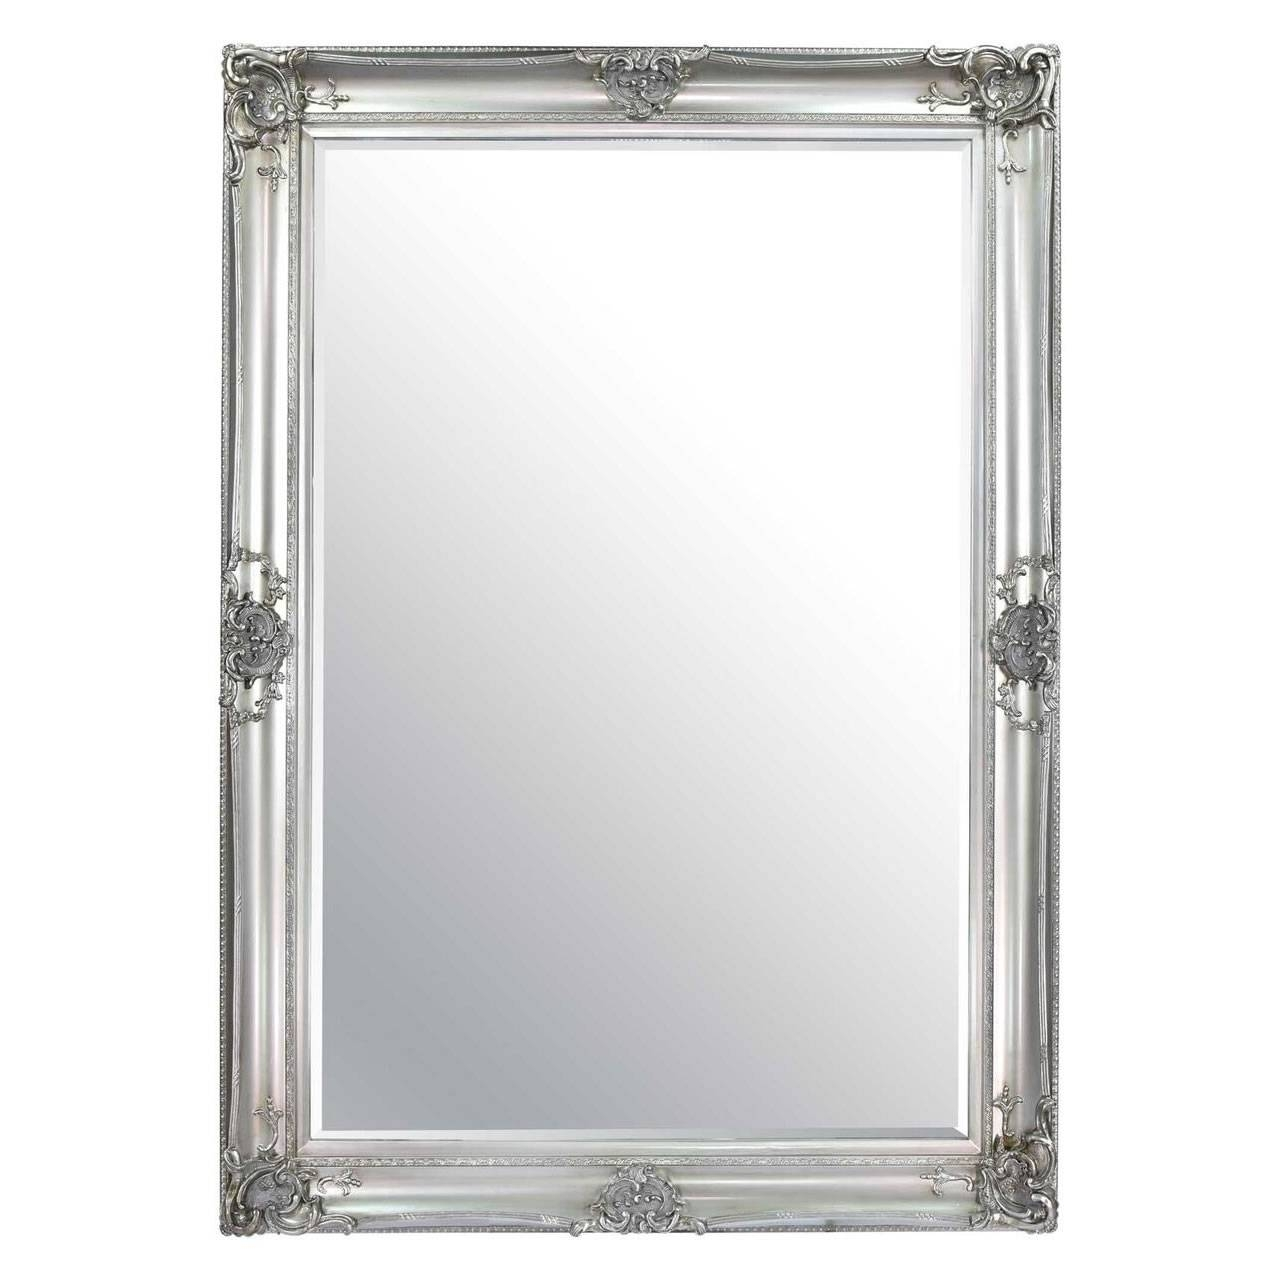 Ornate Framed Mirrors With Regard To Silver Ornate Wall Mirrors (View 17 of 25)